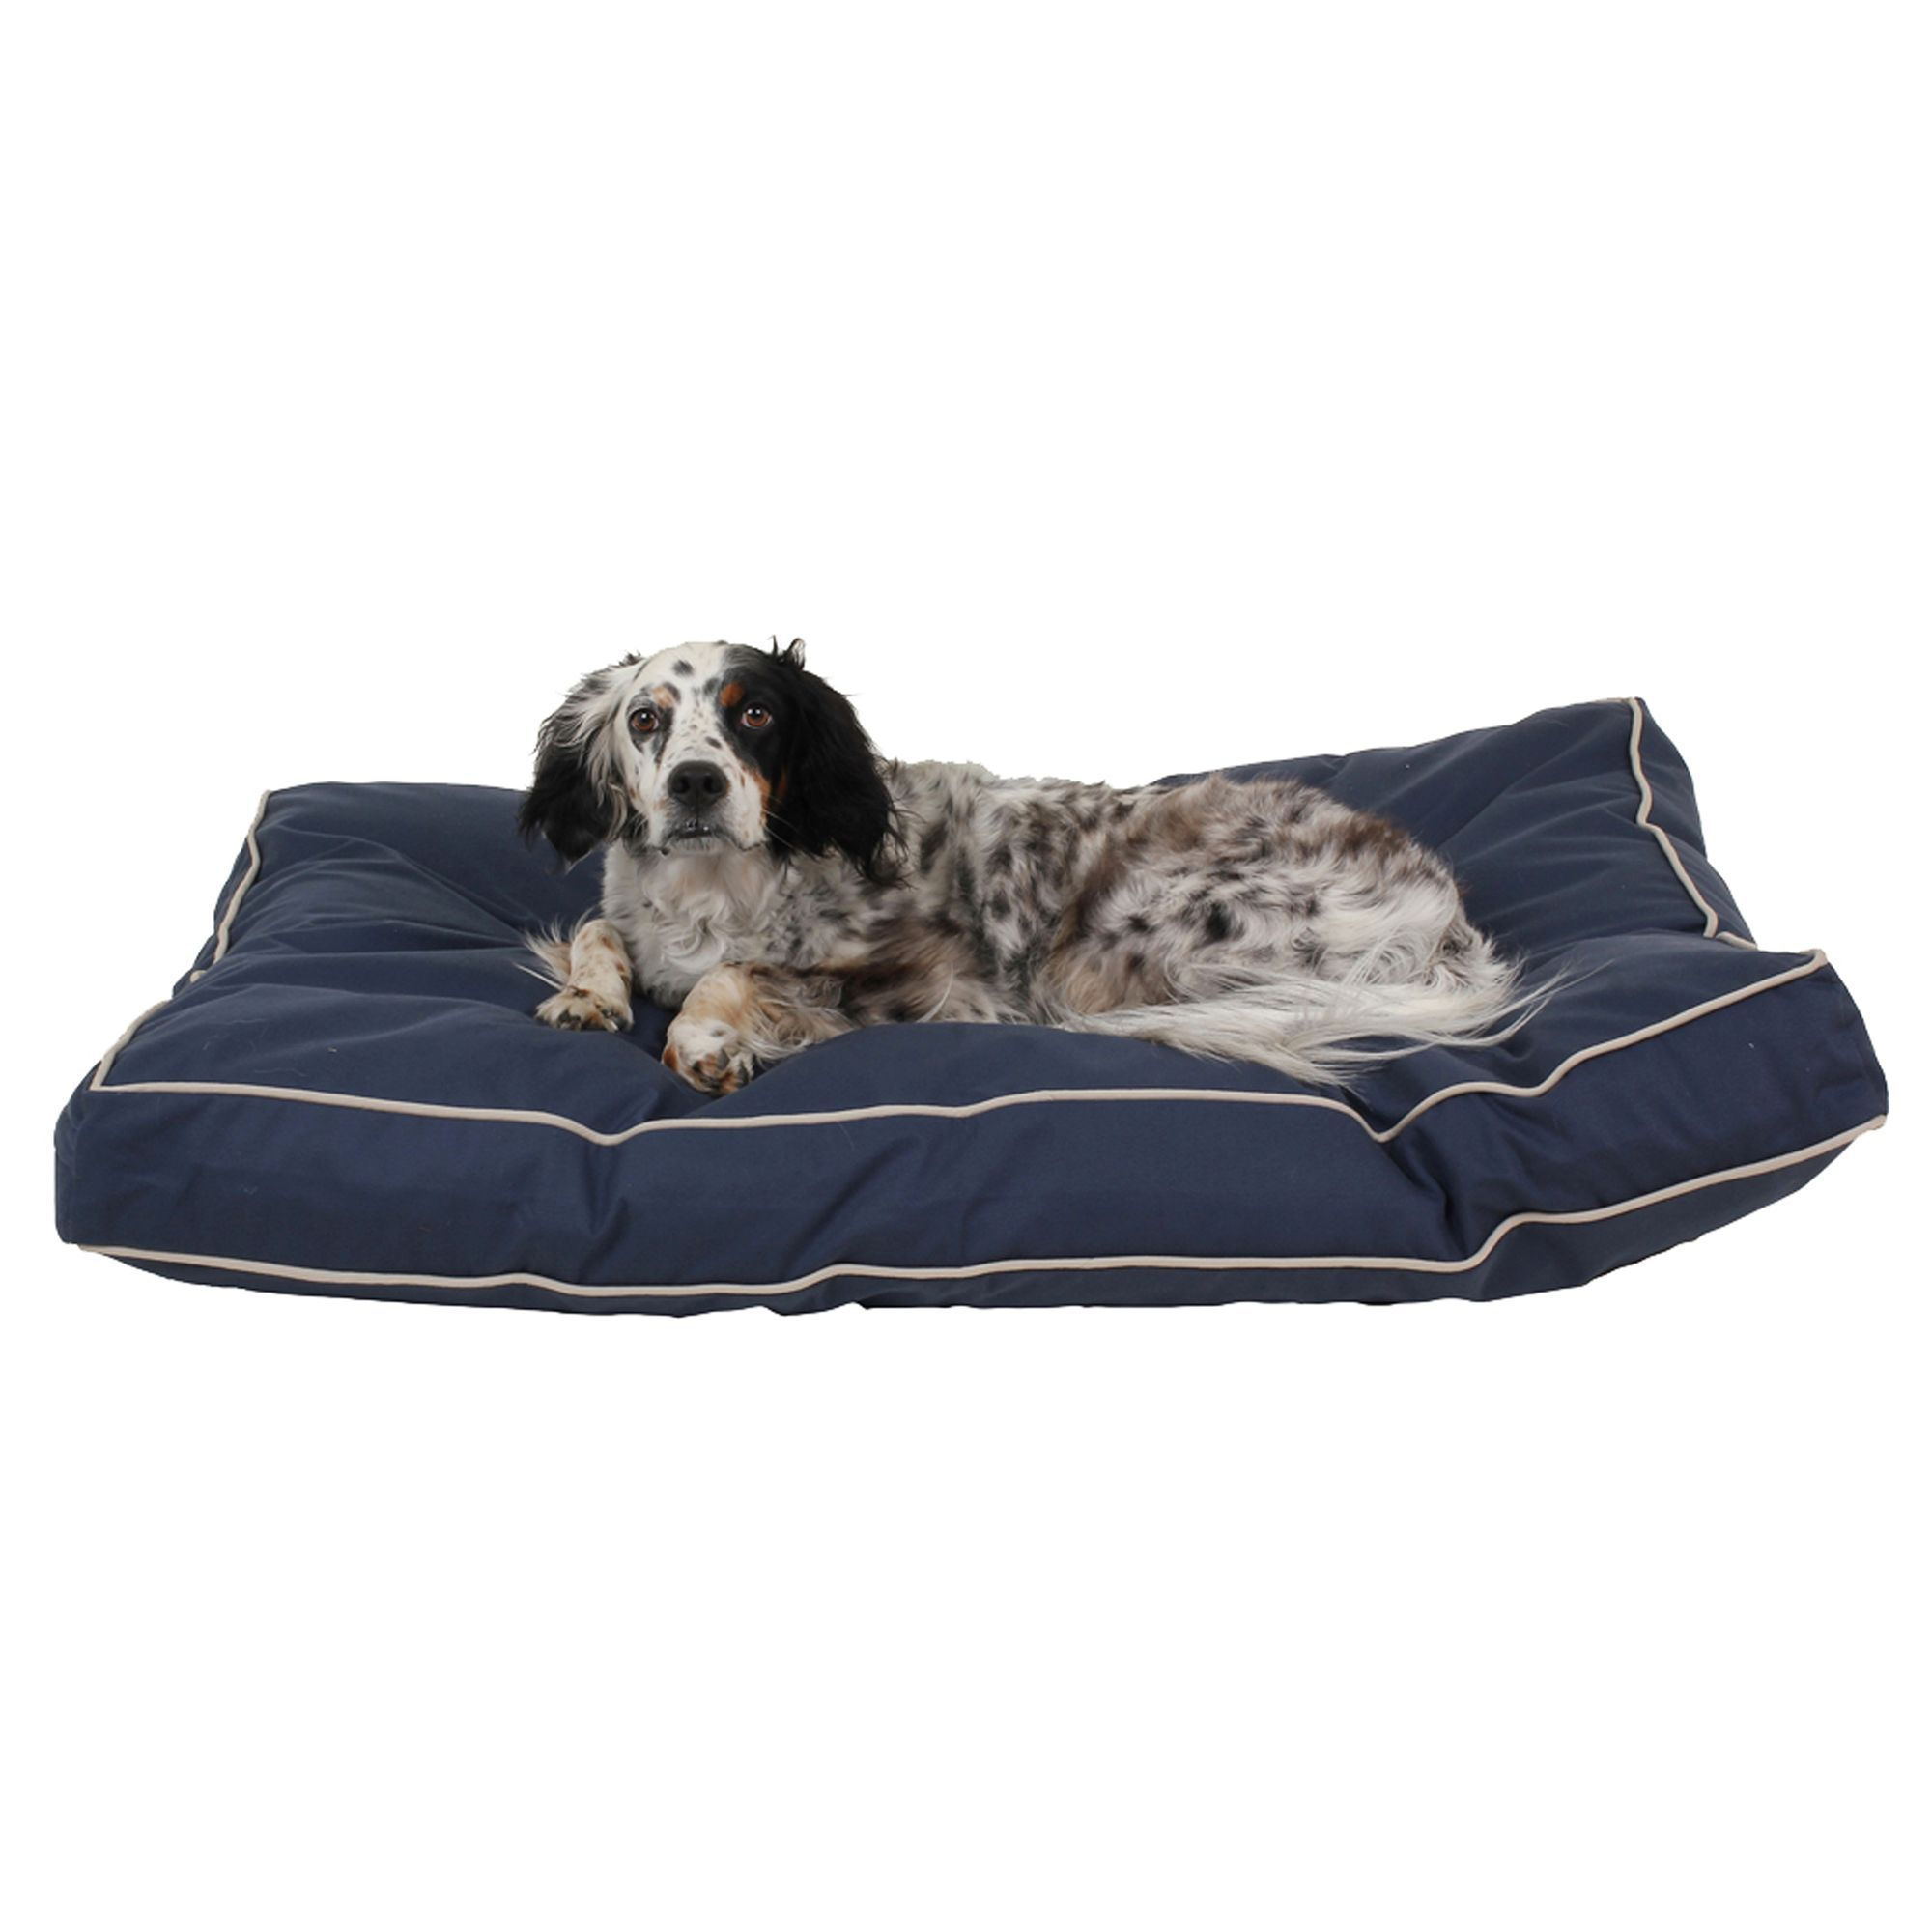 Carolina Pet Classic Canvas Rectangle Personalized Pet Bed